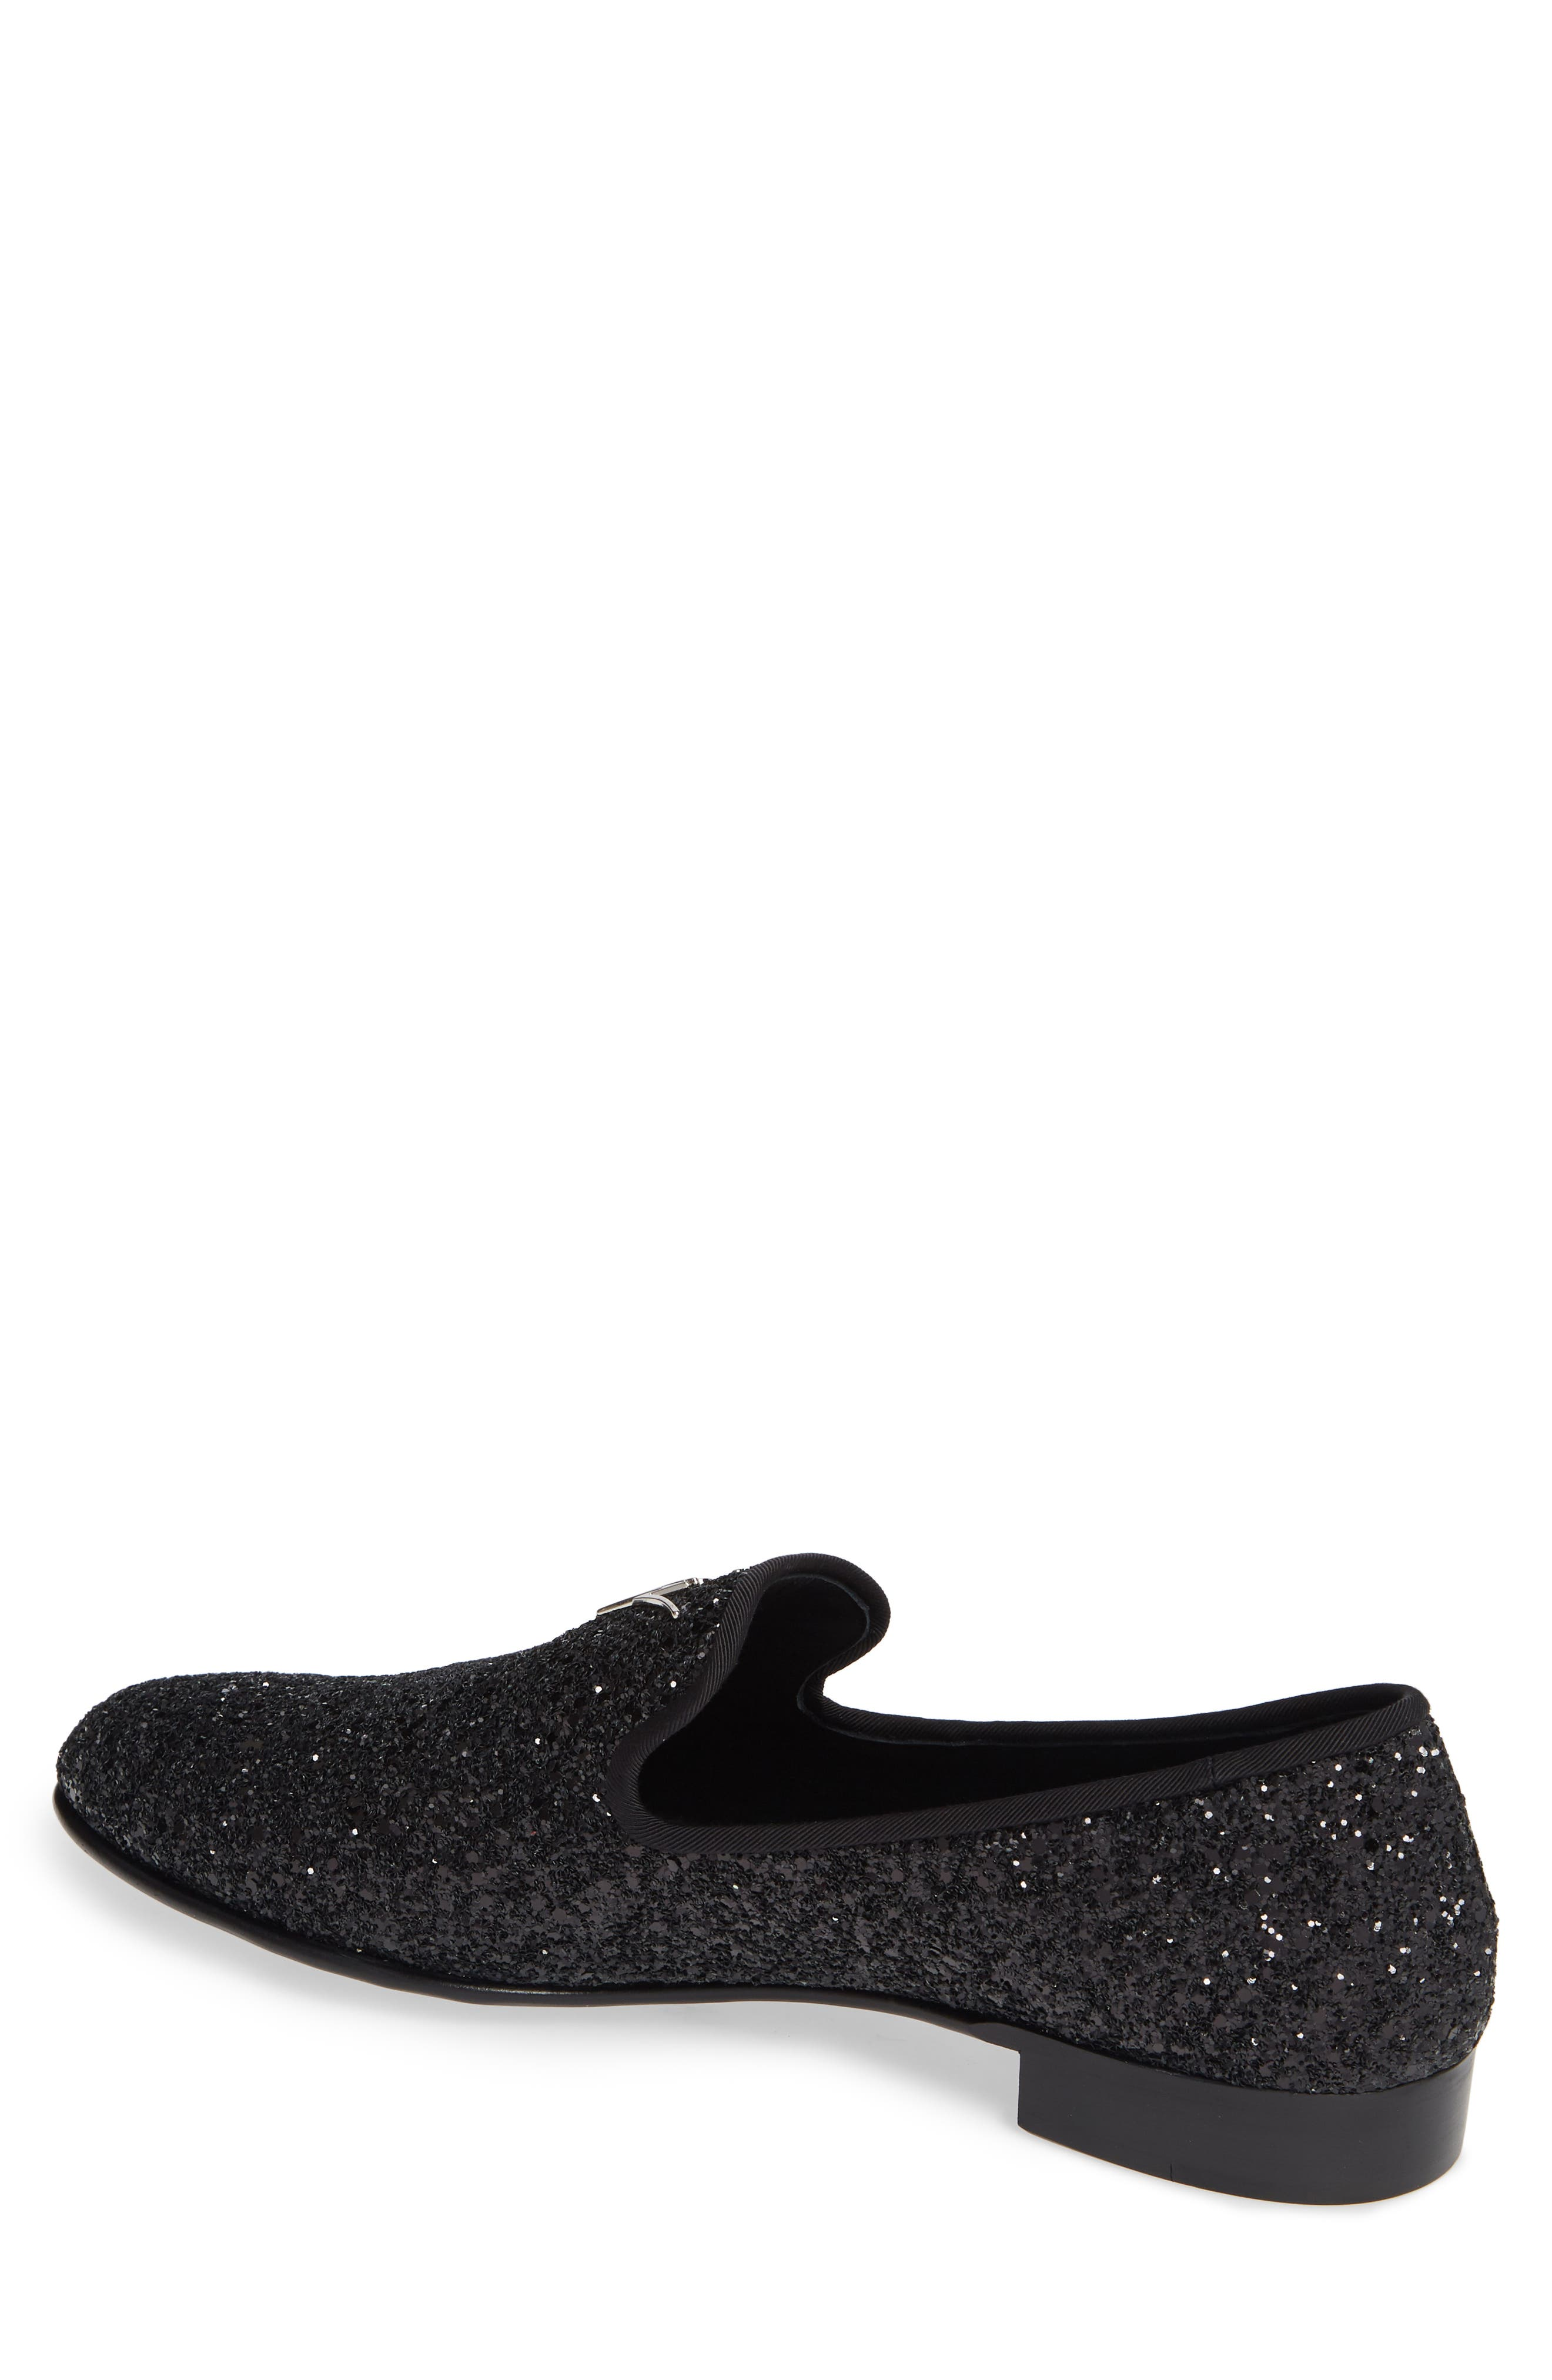 GIUSEPPE ZANOTTI, Glitter Encrusted Smoking Slipper, Alternate thumbnail 2, color, BLACK